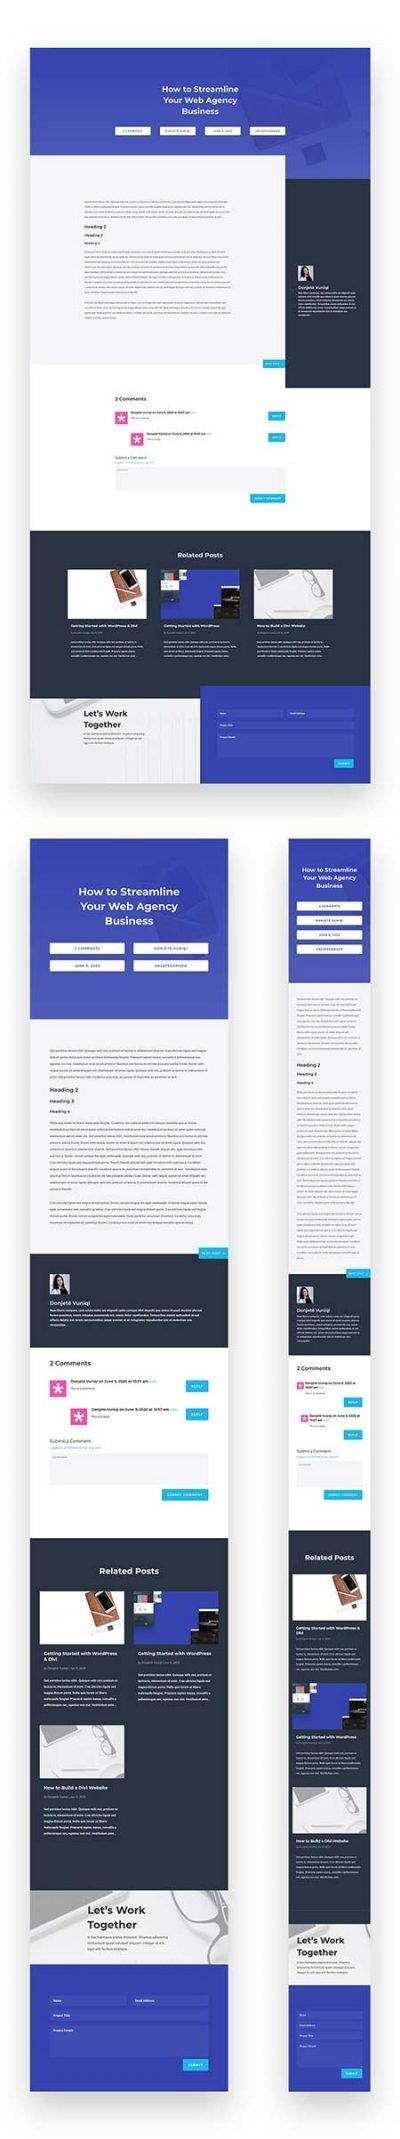 Divi agency blog post template